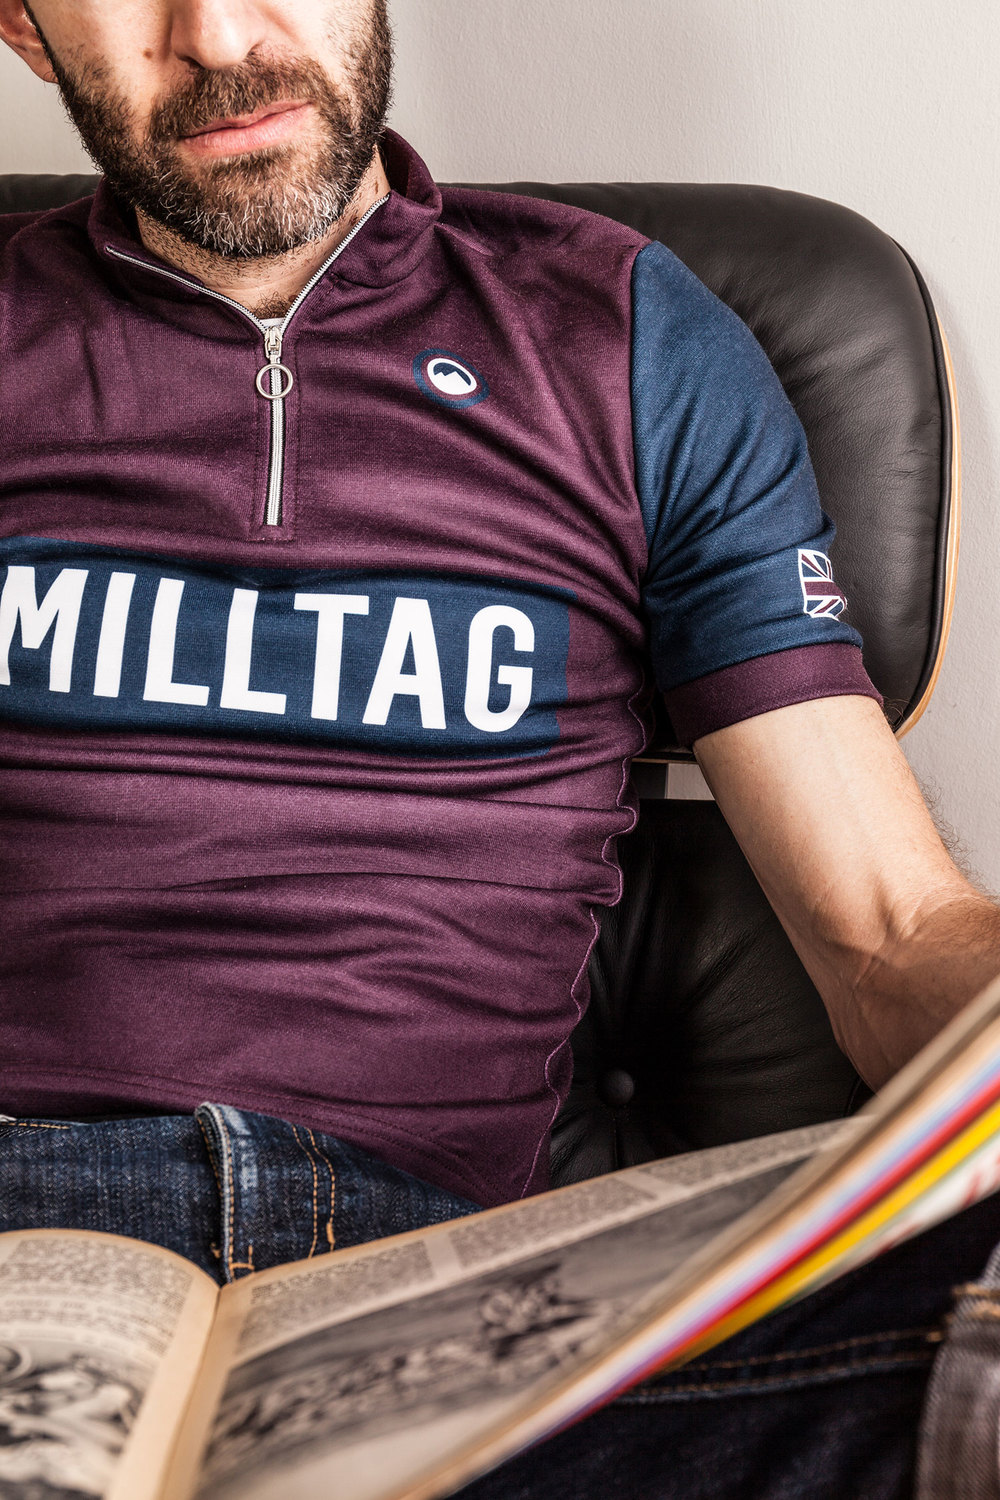 Milltag Summer Collection by Chris Brock